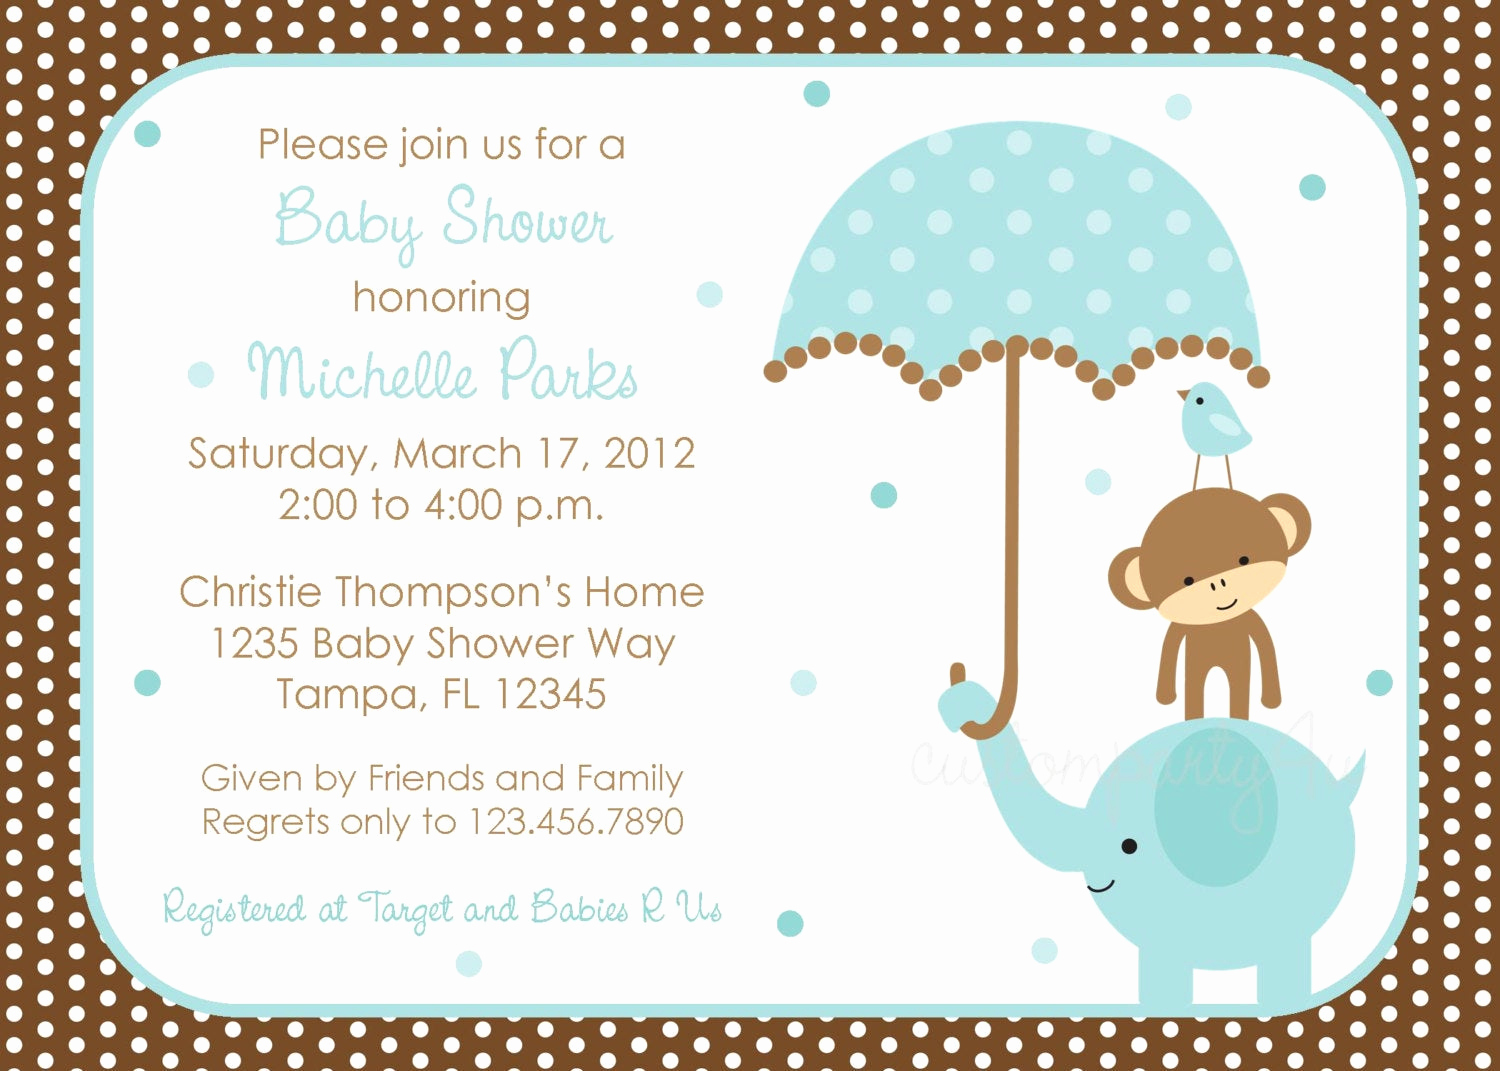 Baby Boy Invitation Ideas Best Of Polka Dot Elephant Baby Shower Invitation Boy Design